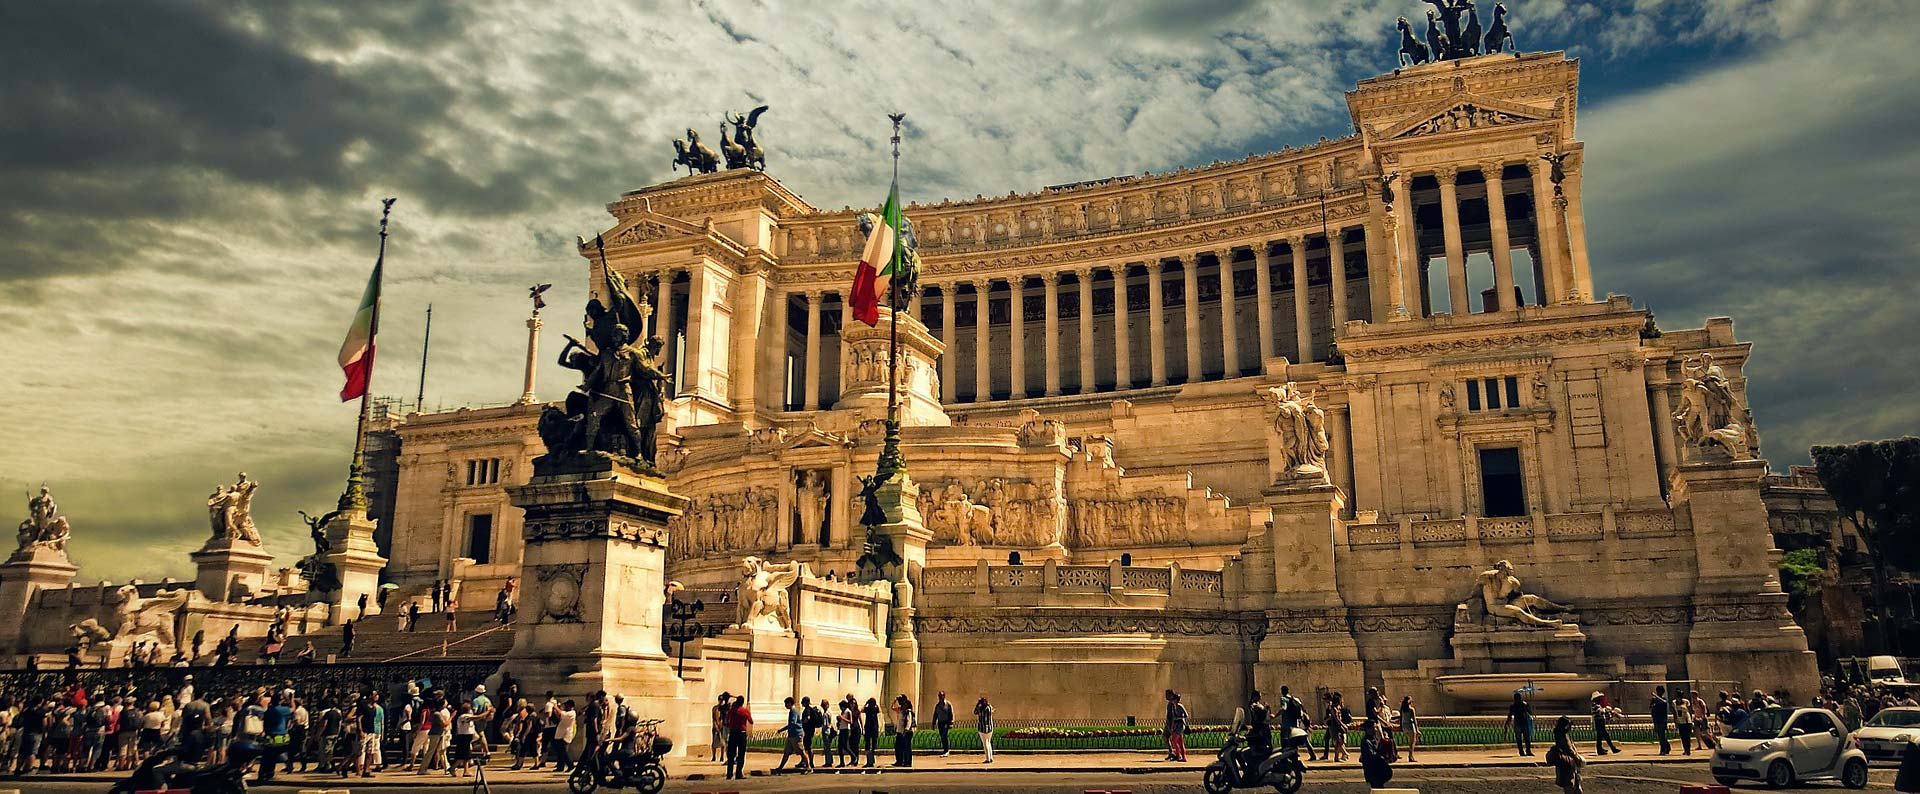 Discounted flight tickets from Chicago to Rome - IFlyFirstClass